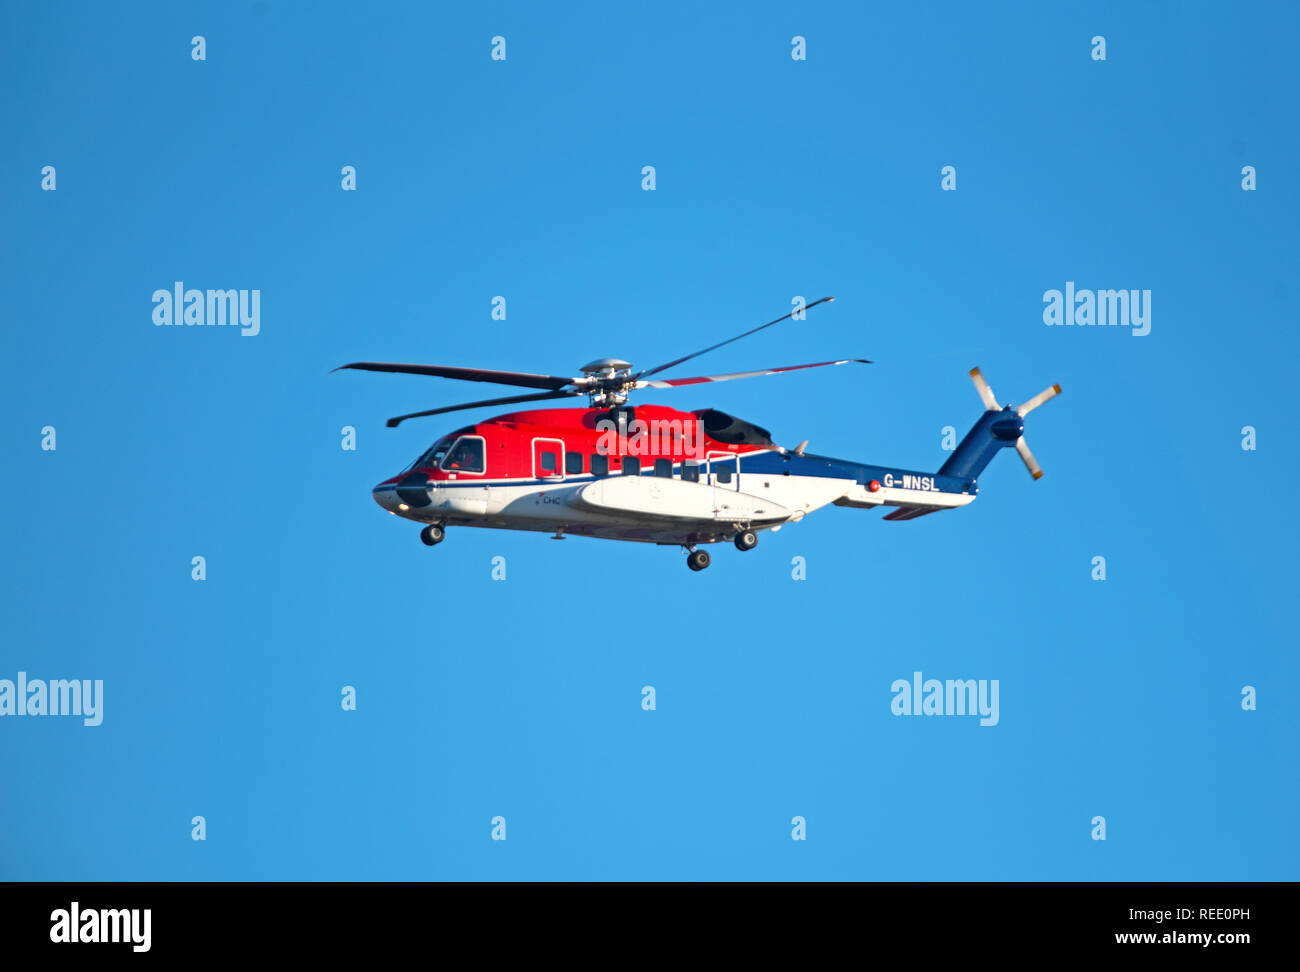 A Sikorsky S92-A helicopter from the Babcock MCS Offshore/Onshore fleet at Aberdeen arriving back at Dyce heliport from the North sea crossing. - Stock Image